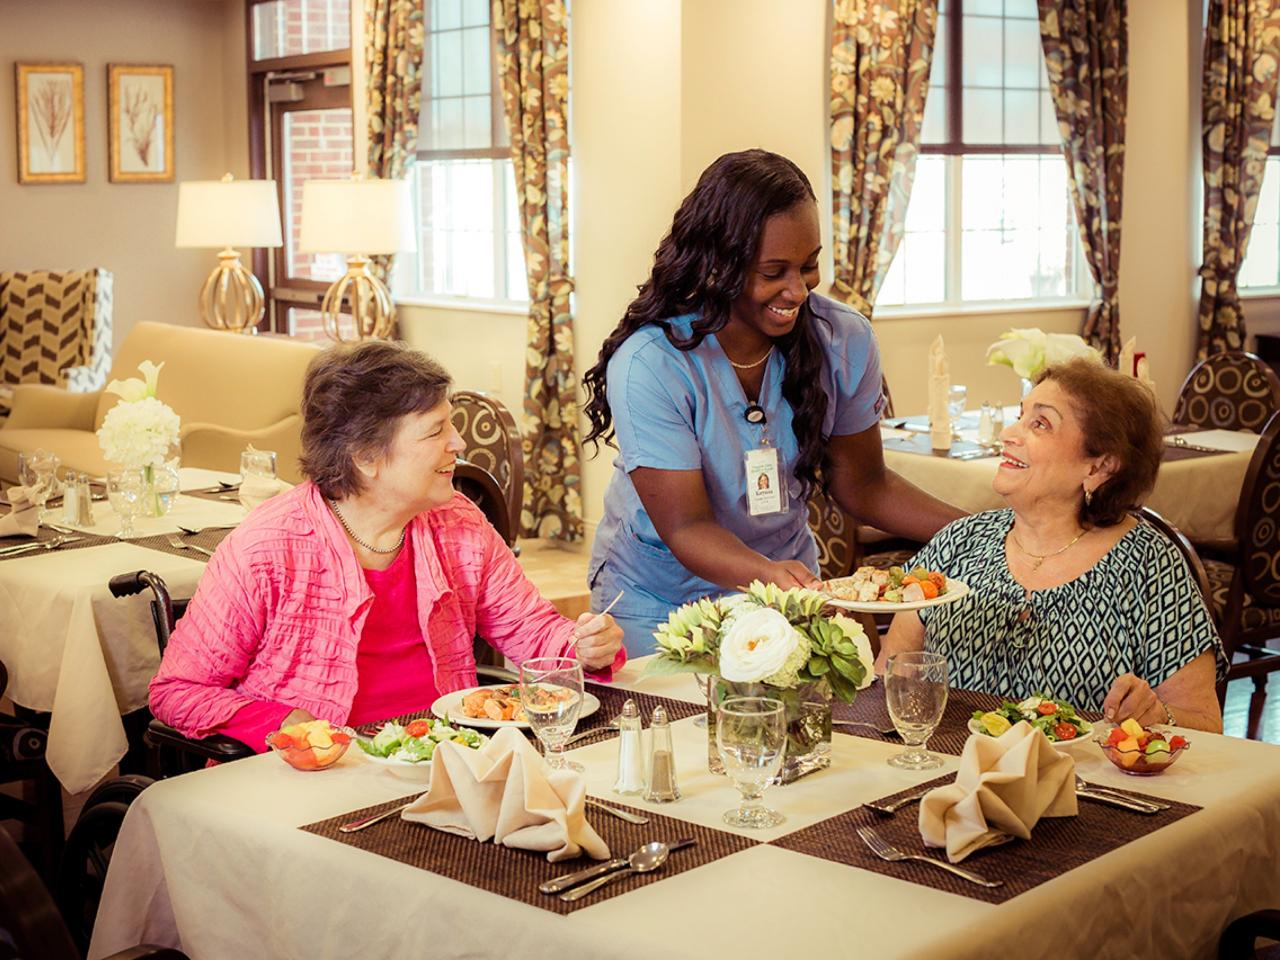 Patients enjoying our Restaurant-Style Dining experience